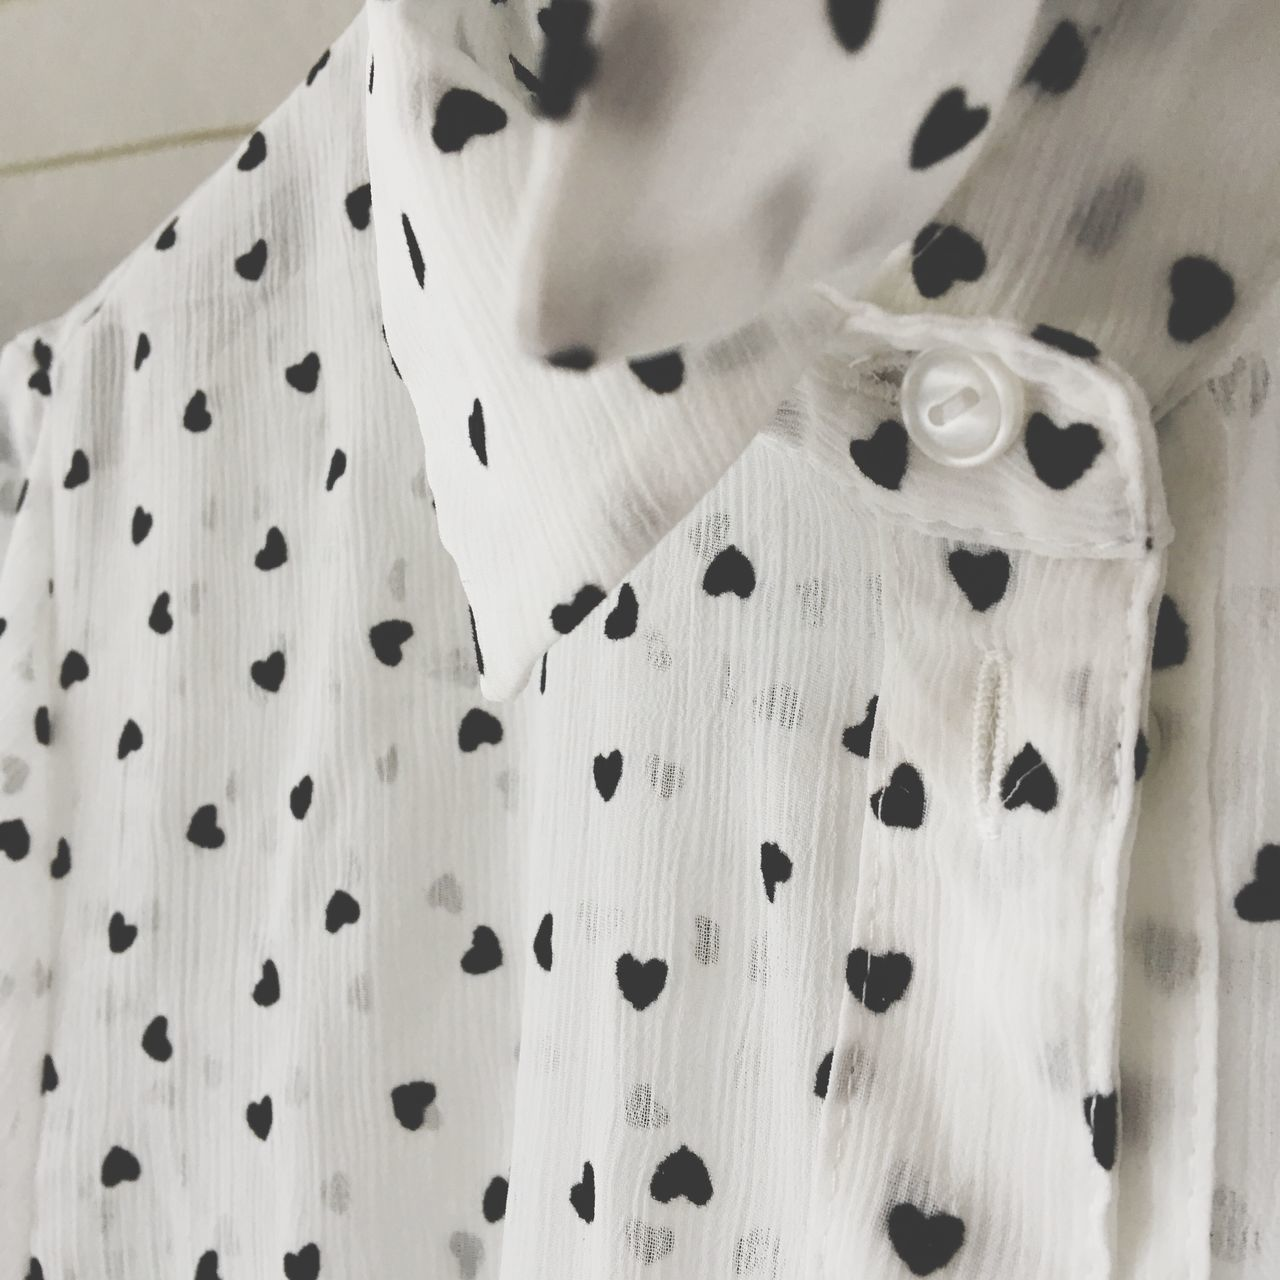 EyeEm Selects Heart Dress Shirt Indoors  Close-up No People Day White Color Indoors  Womanity  Collection